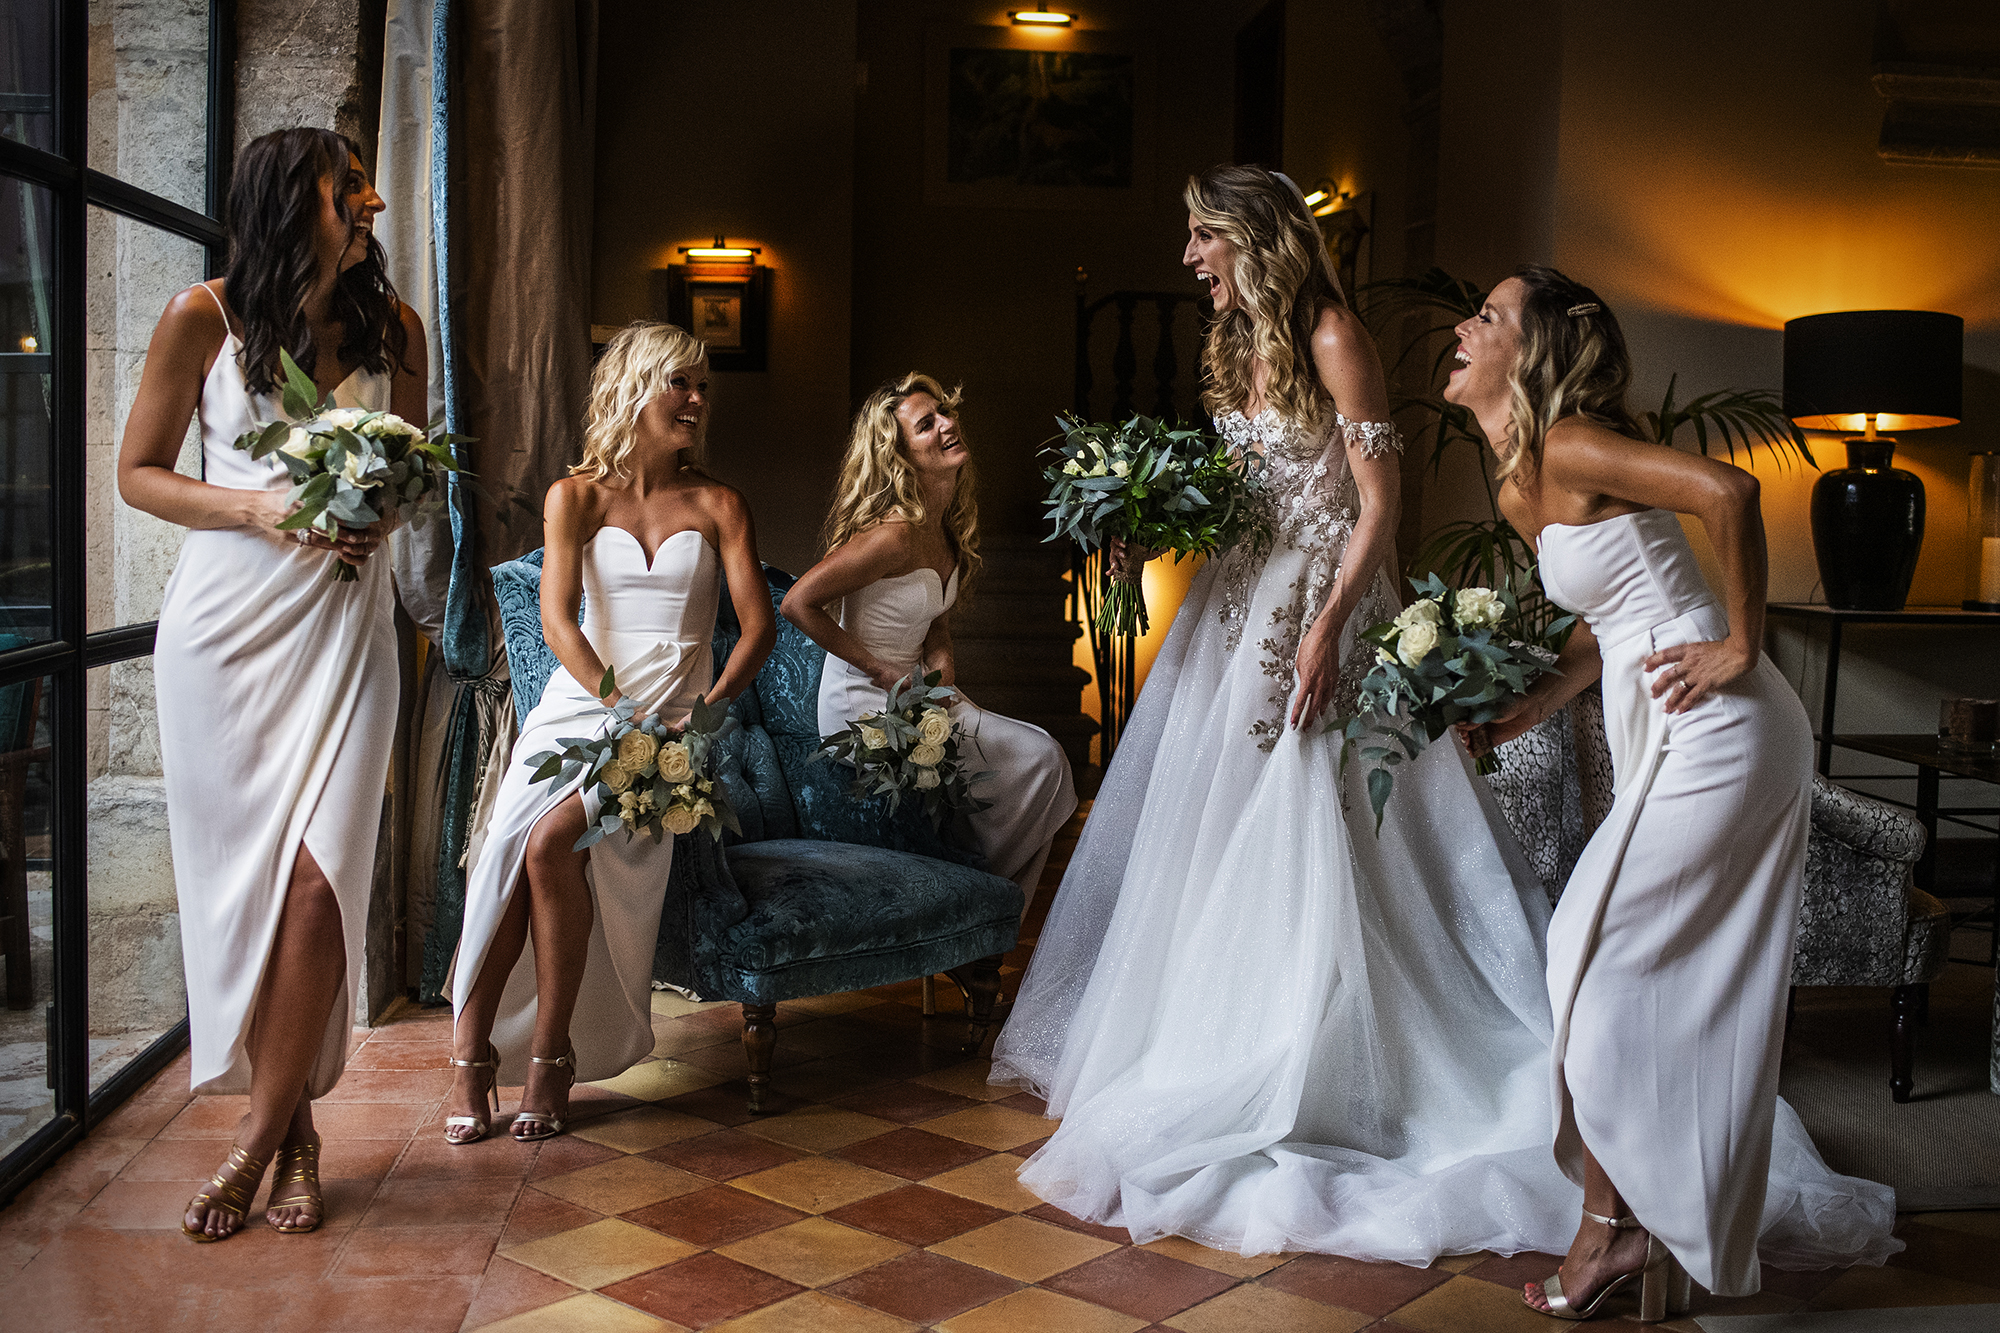 Laughing bridal party portrait - photo by Victor Lax